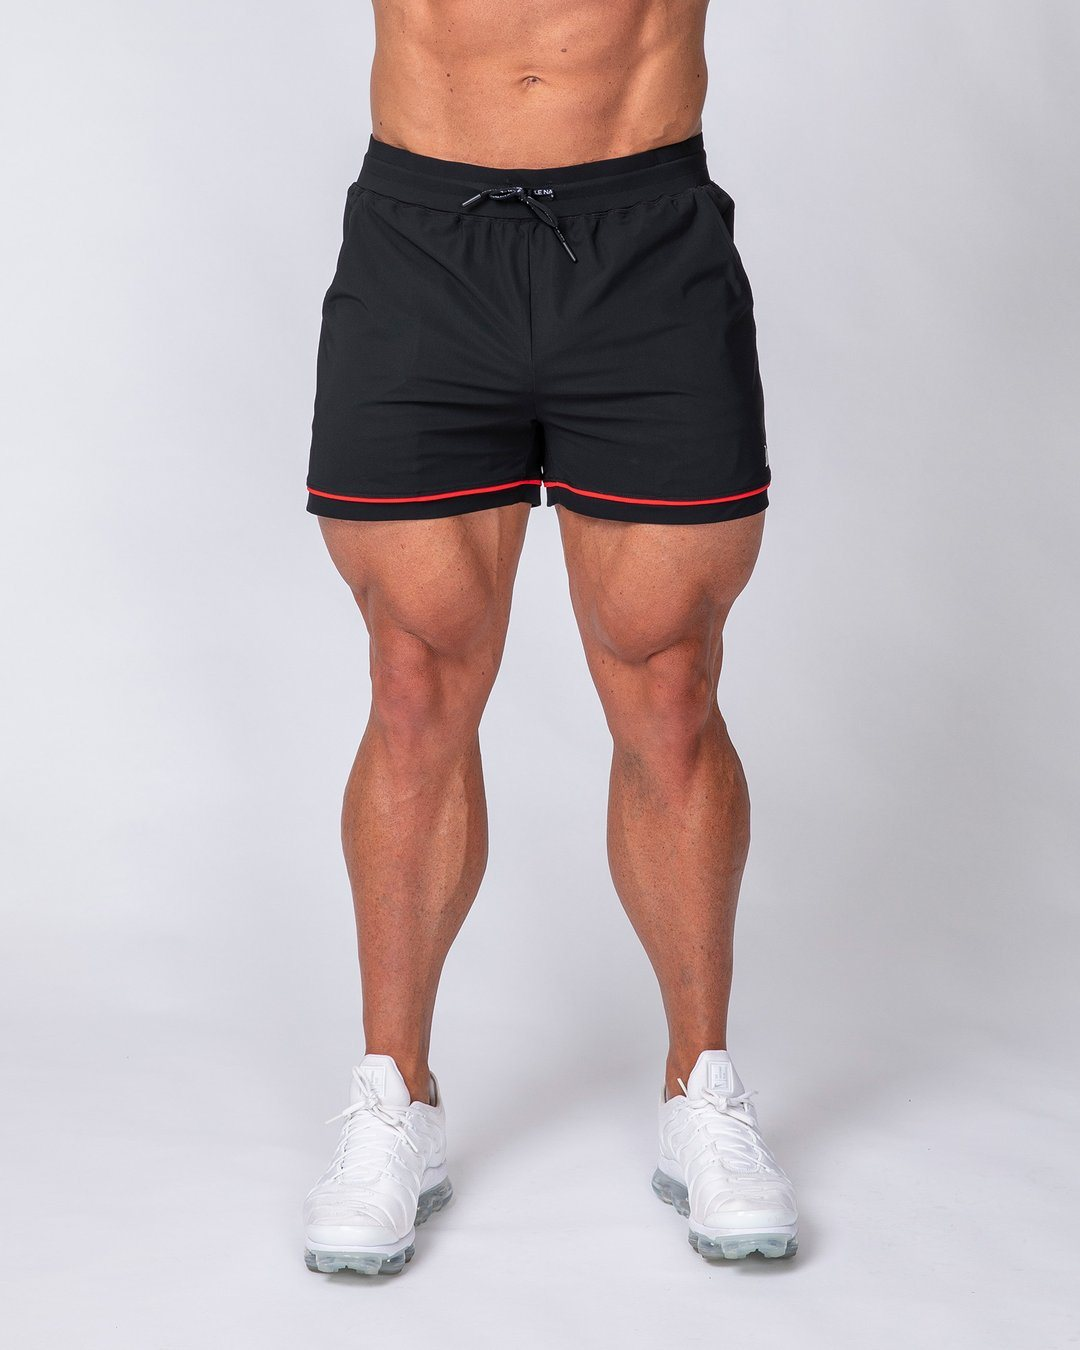 Muscle Nation Mens Squat Shorts - Black/ Red